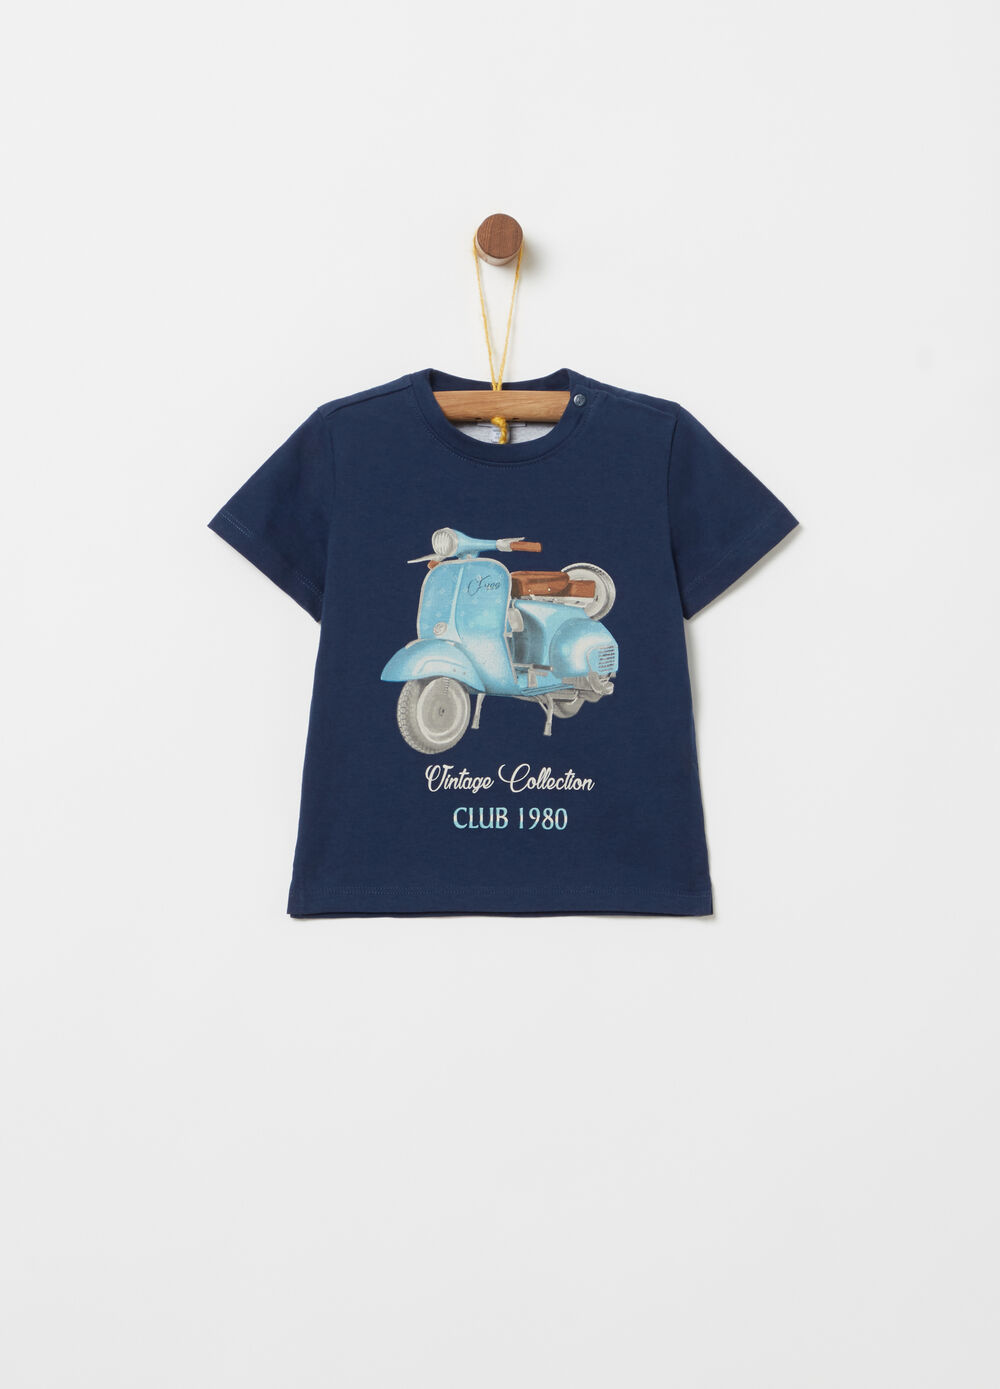 T-shirt in 100% cotton with vintage print